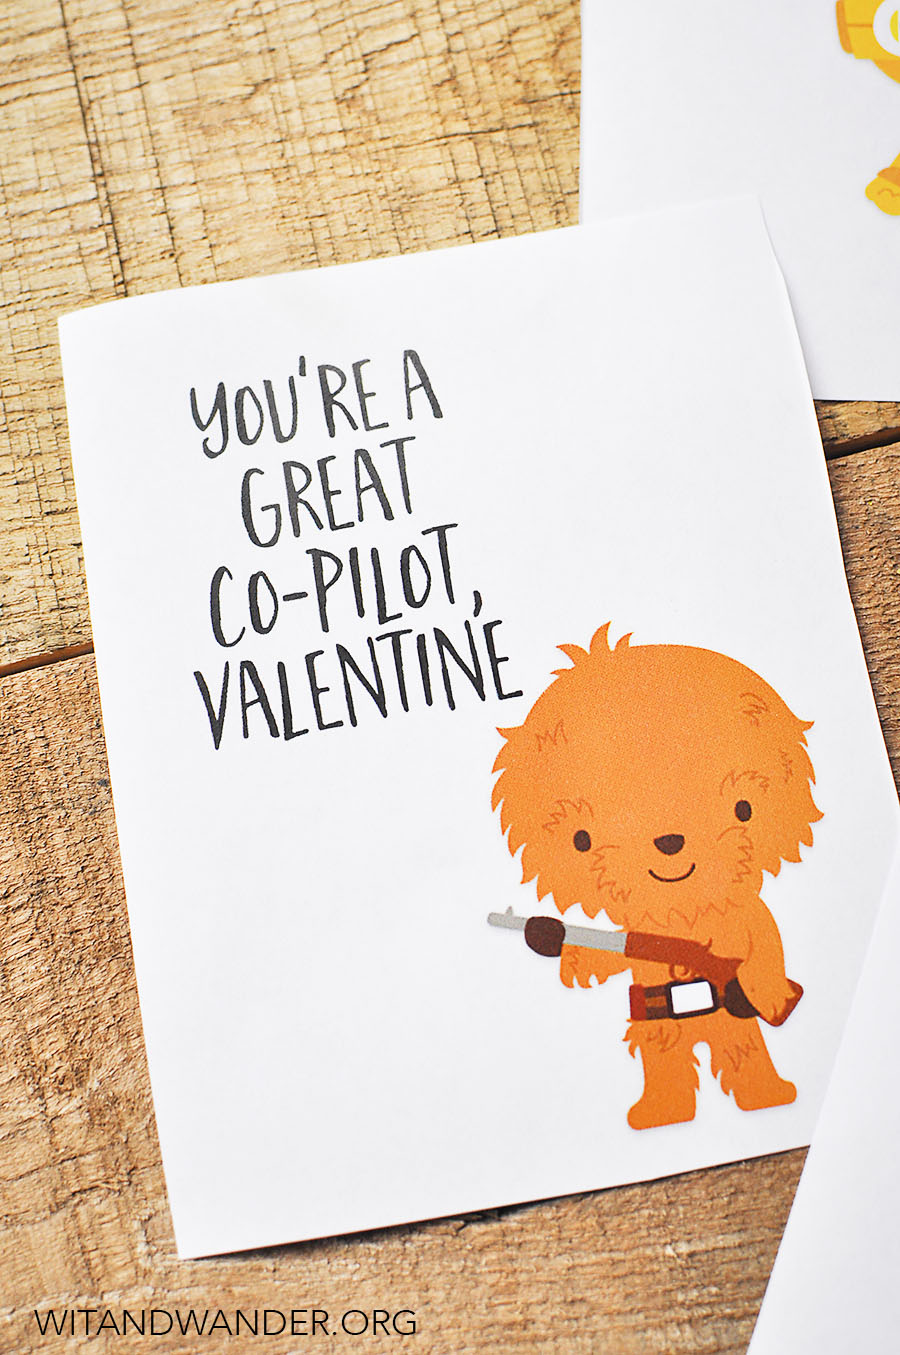 picture about Free Printable Valentines Day Cards for Your Husband named Star Wars Valentines Working day Playing cards for Little ones - Our Handcrafted Everyday living